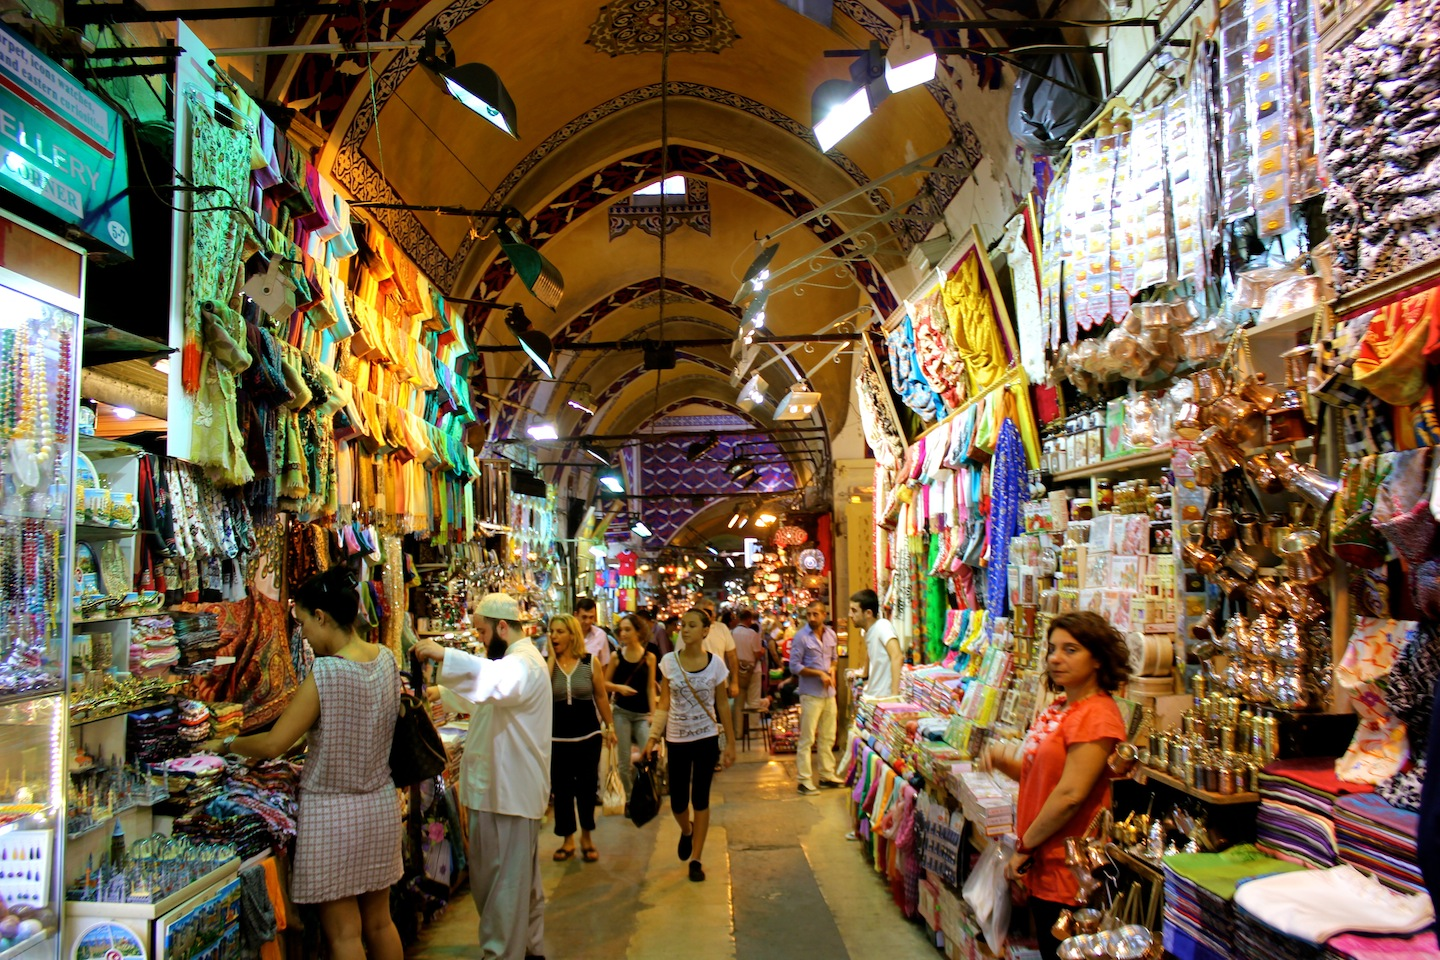 Istanbul (Not Constantinople): The Grand Bazaar